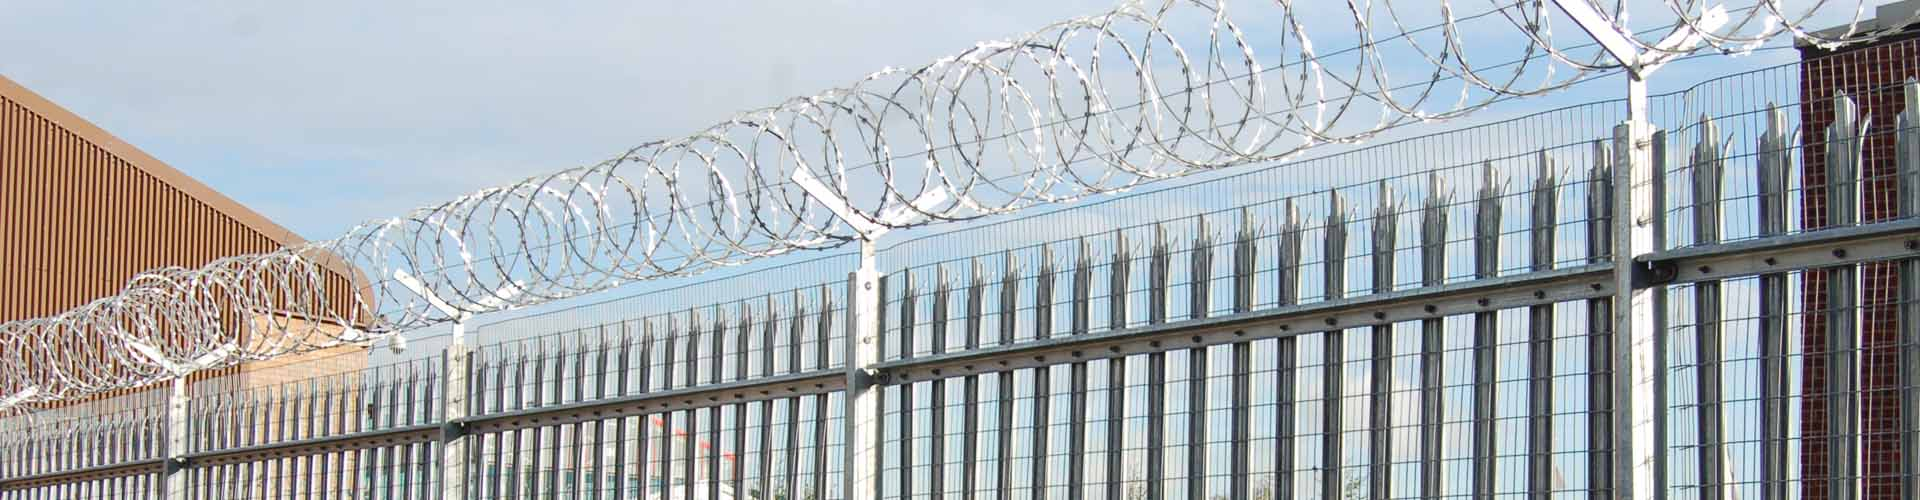 High Security Palisade Fence